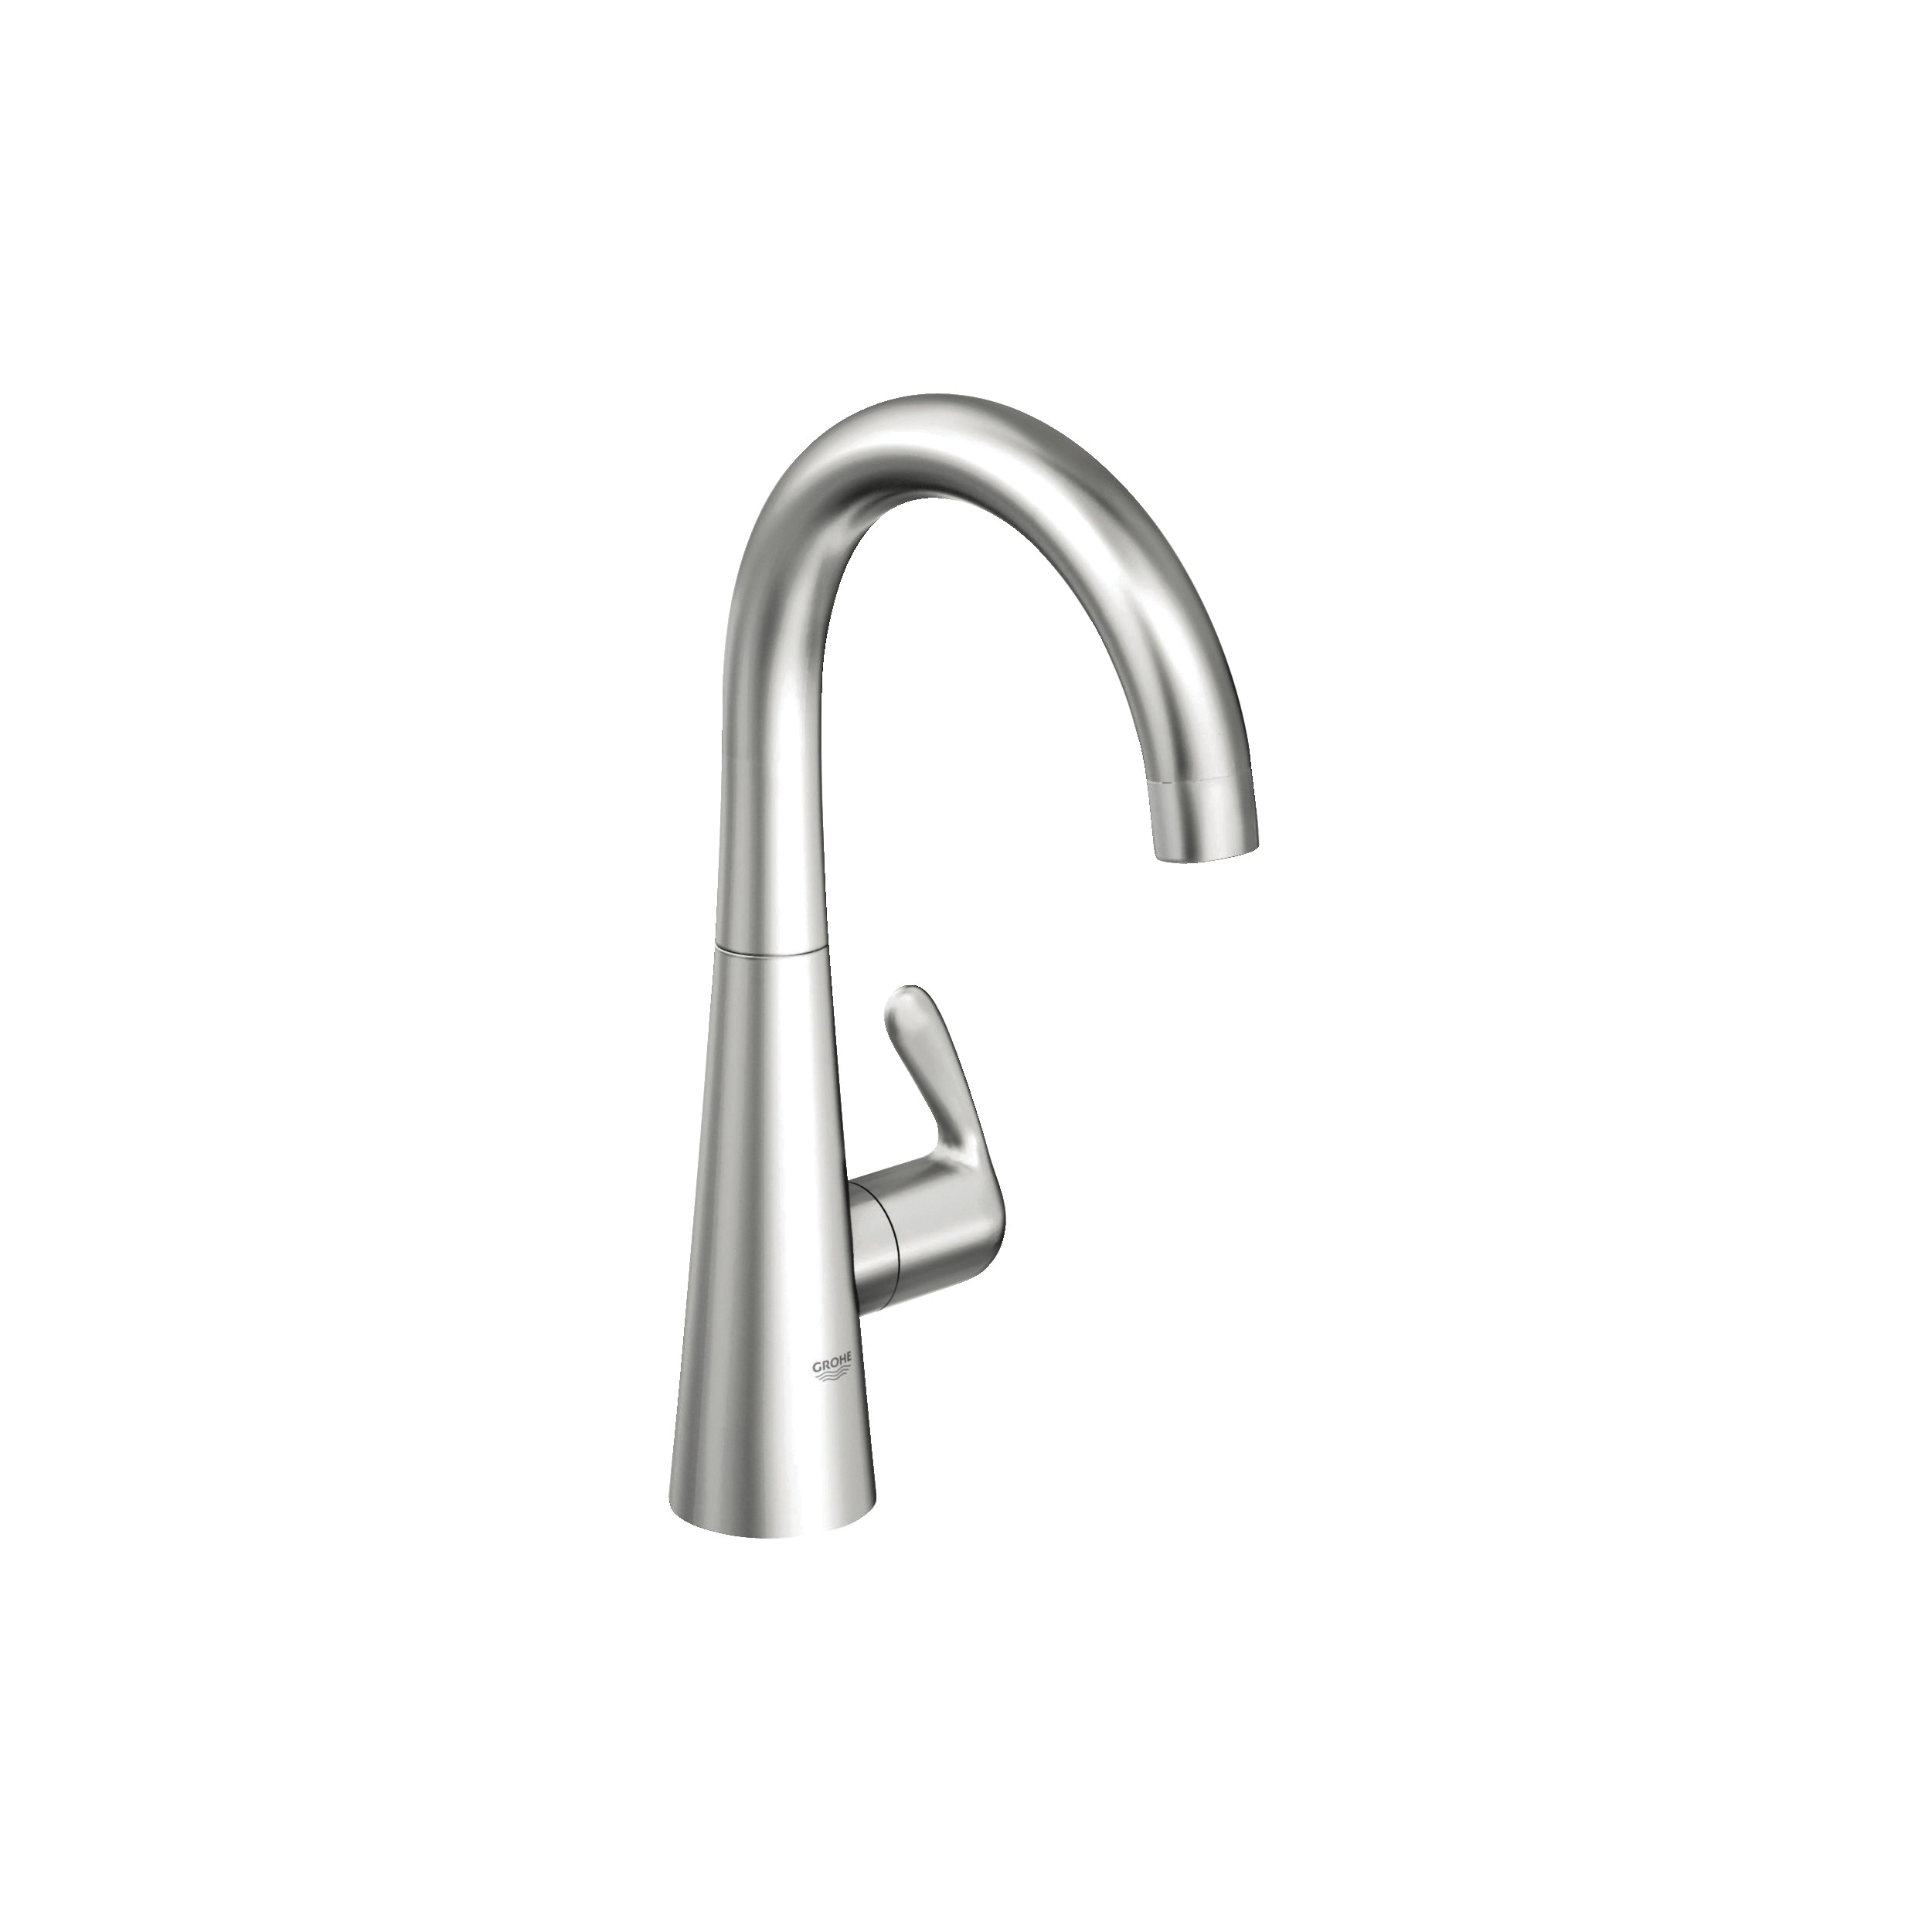 GROHE 30026SD0 Zedra Pilar Tap, 1.75 gpm, Brushed Stainless Steel, 1 Handles, Import